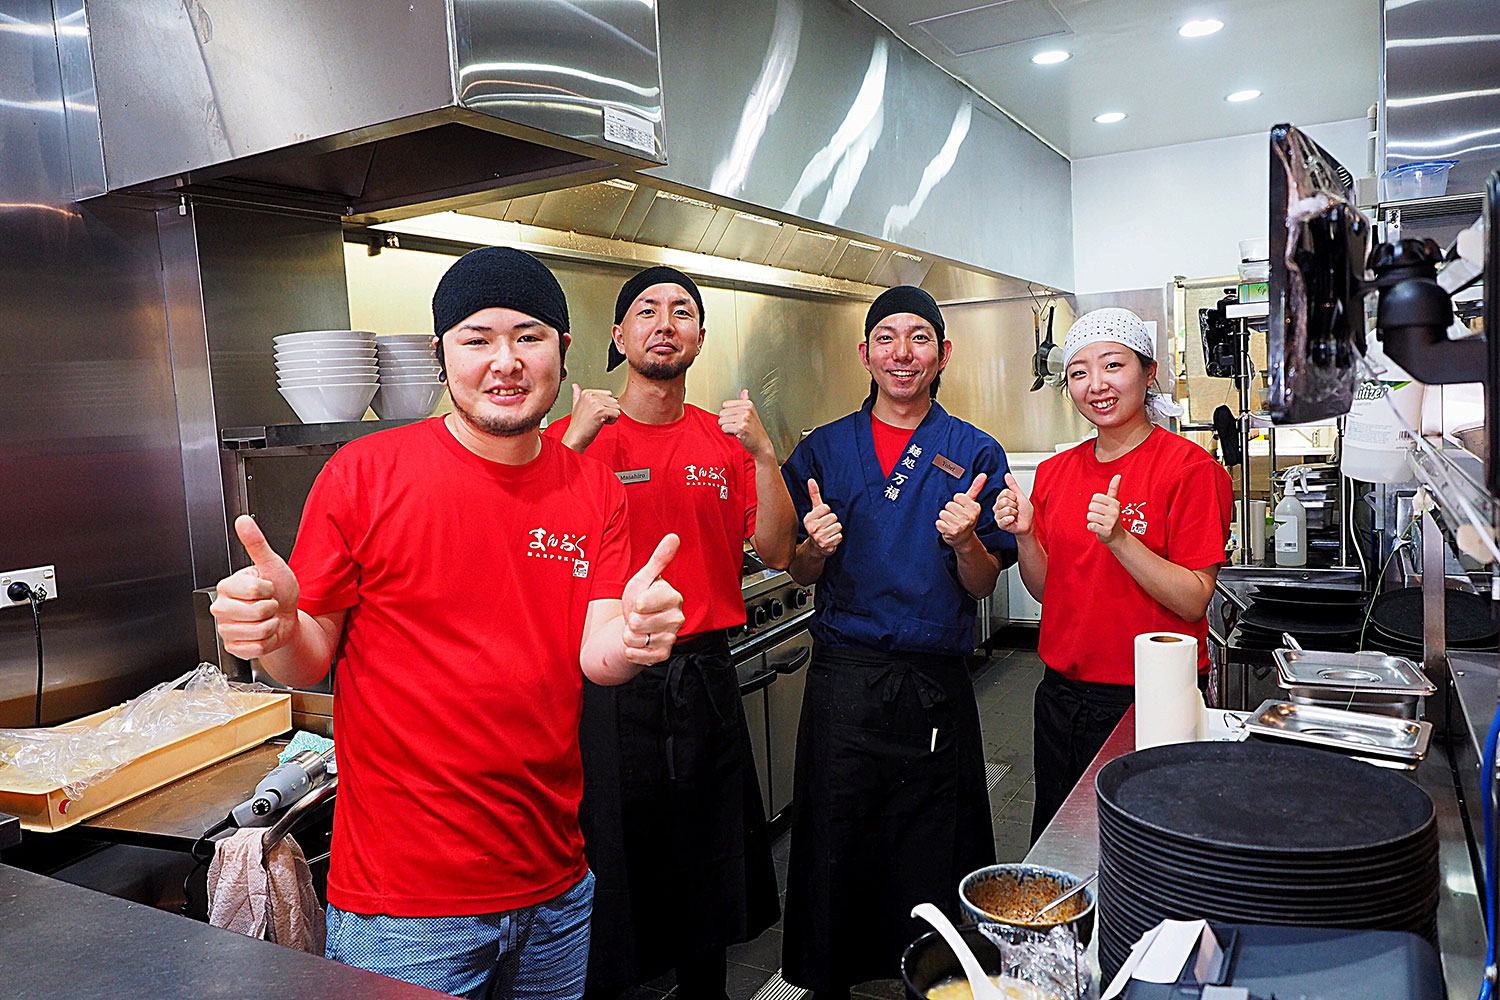 Chef Suzuki from Manpuku Ramen, and his team: Manpuku, Chatswood. Sydney Food Blog